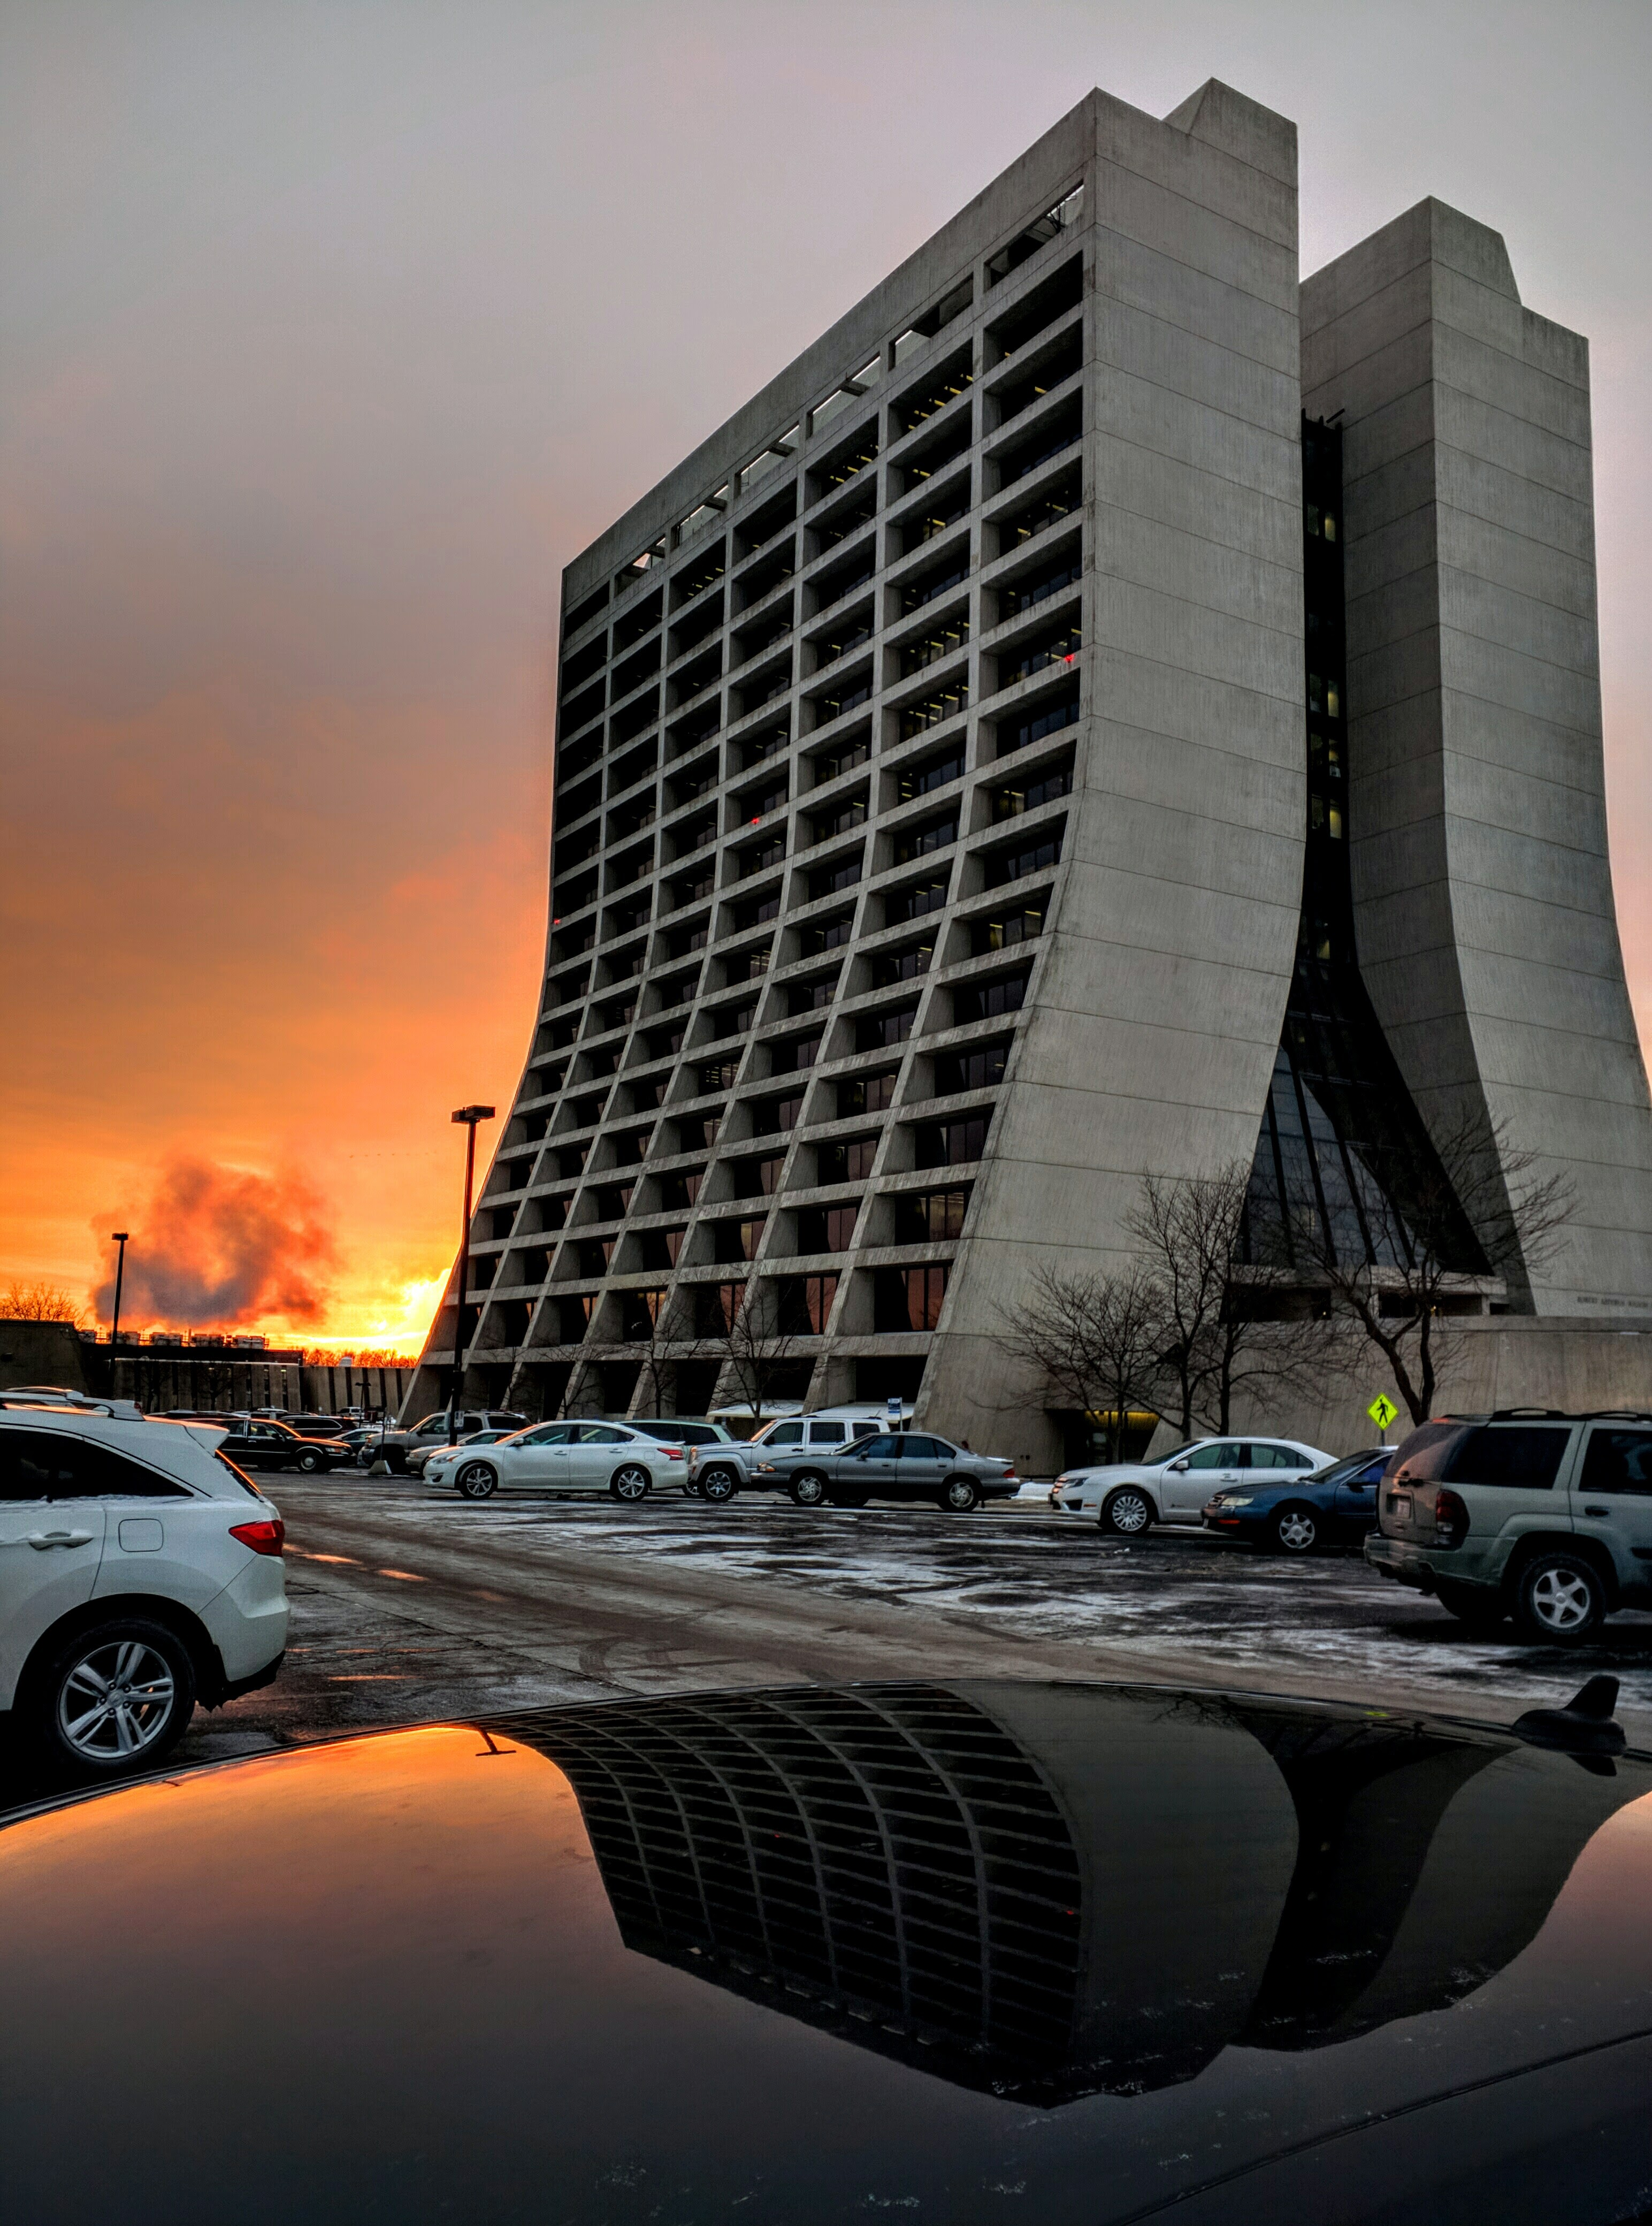 The sun sets behind Wilson Hall. Photo: Valery Stanley, WDRS